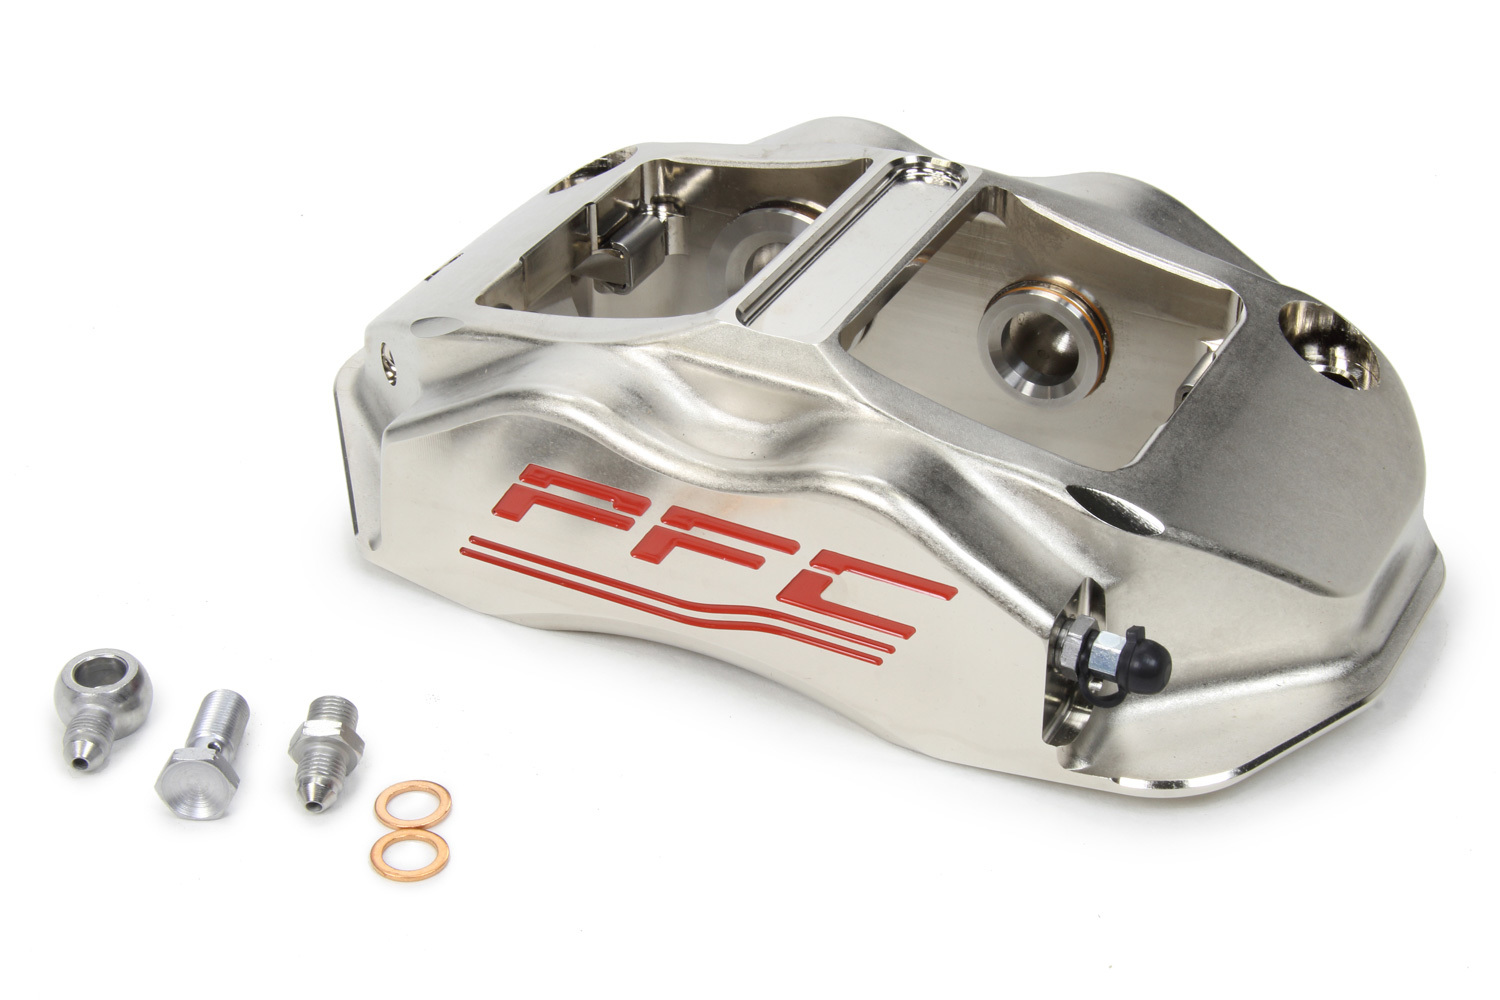 Performance Friction 94-323-410-440-12 Brake Caliper, ZR94, Passenger Side, Trailing, 4 Piston, Aluminum, Clear Anodized, 12.716 in OD x 1.250 in Thick Rotor, 7.00 in Radial Mount, Each